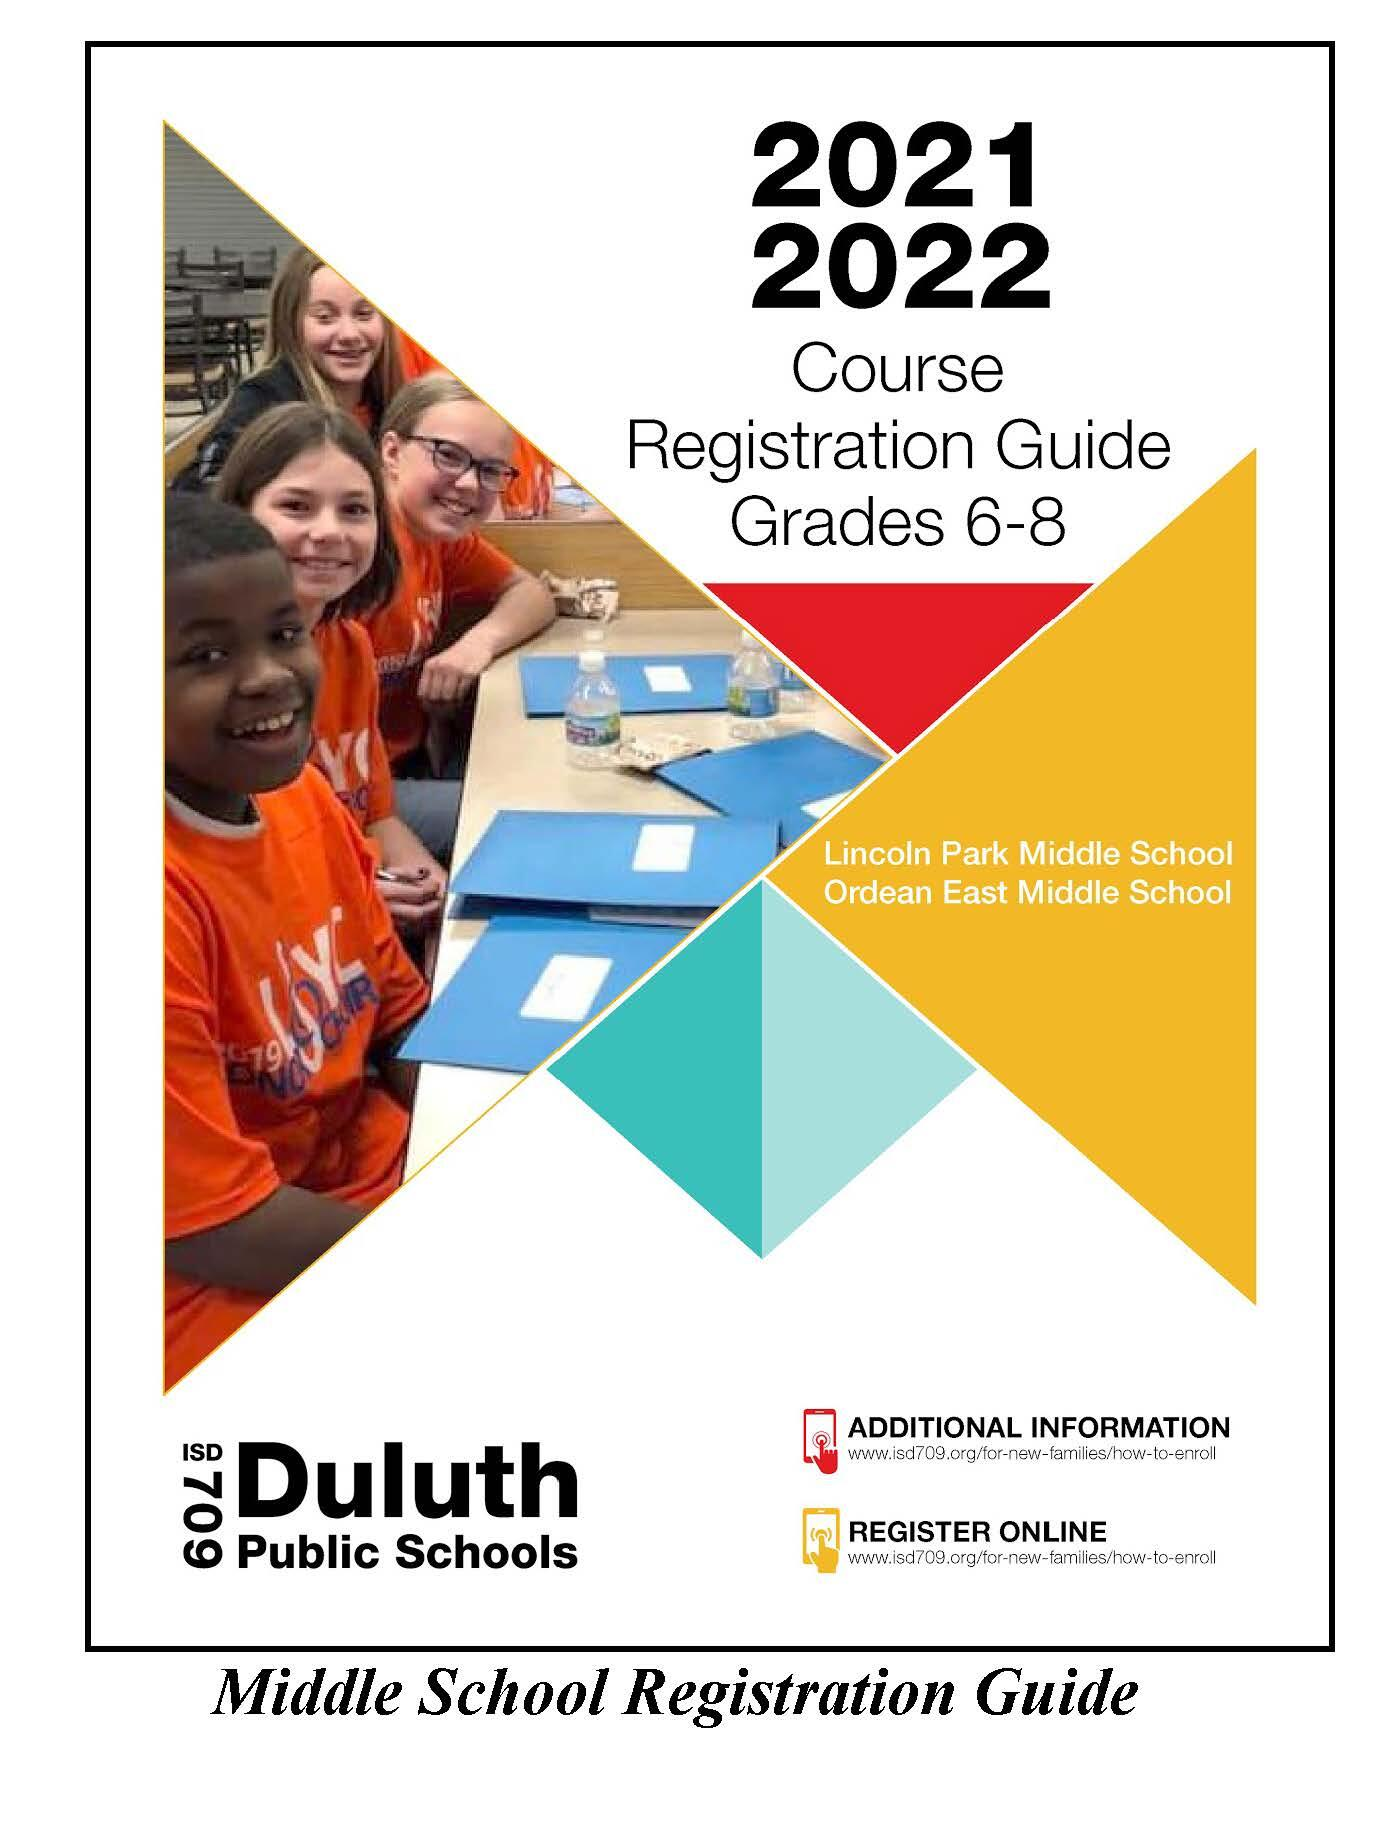 Middle School Registration Guide Cover